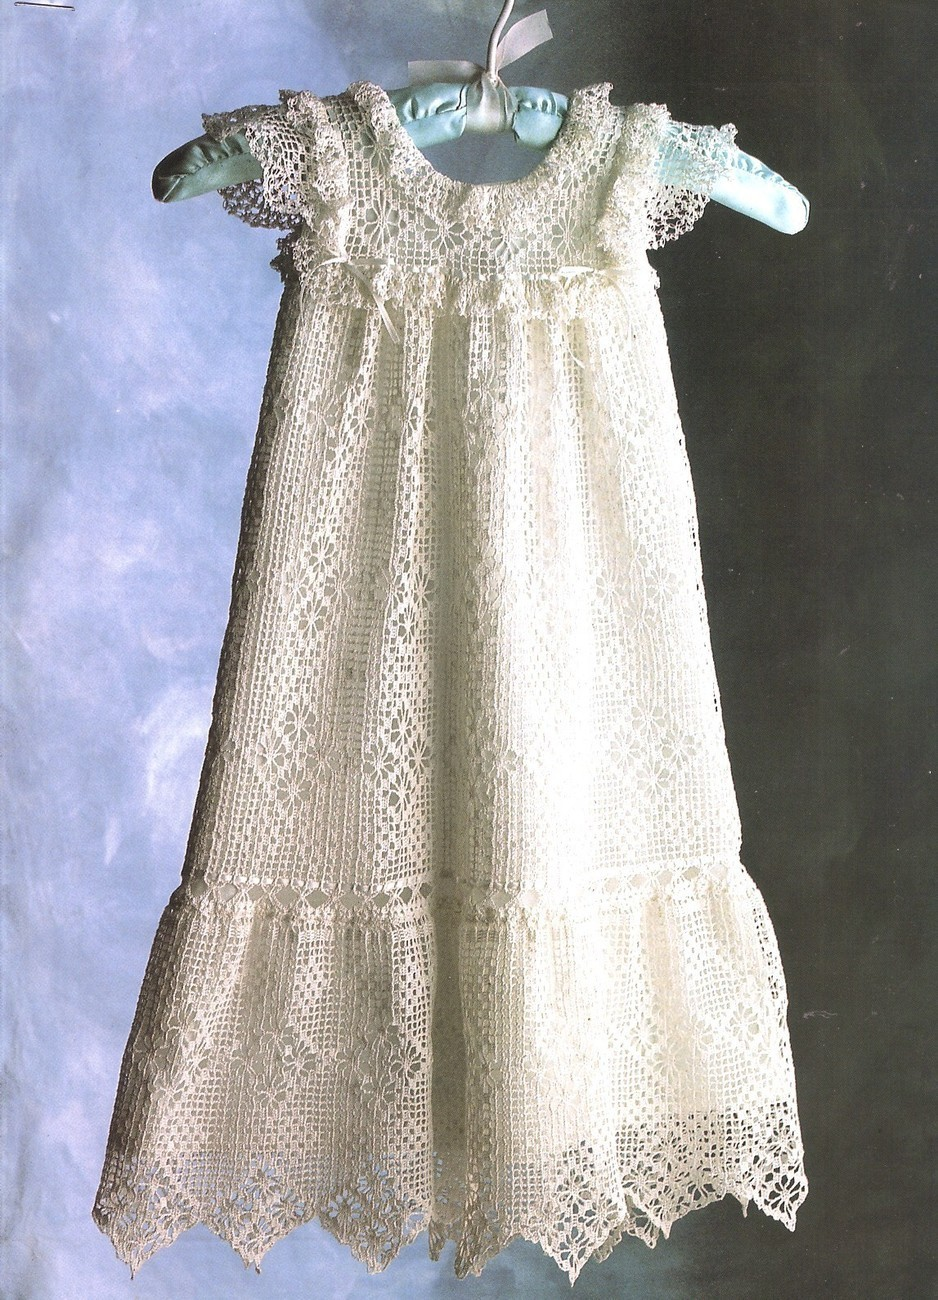 Free Crochet Patterns For Childrens Dresses : Antique Baby Dress Crochet Pattern Gown Infants Lace ...